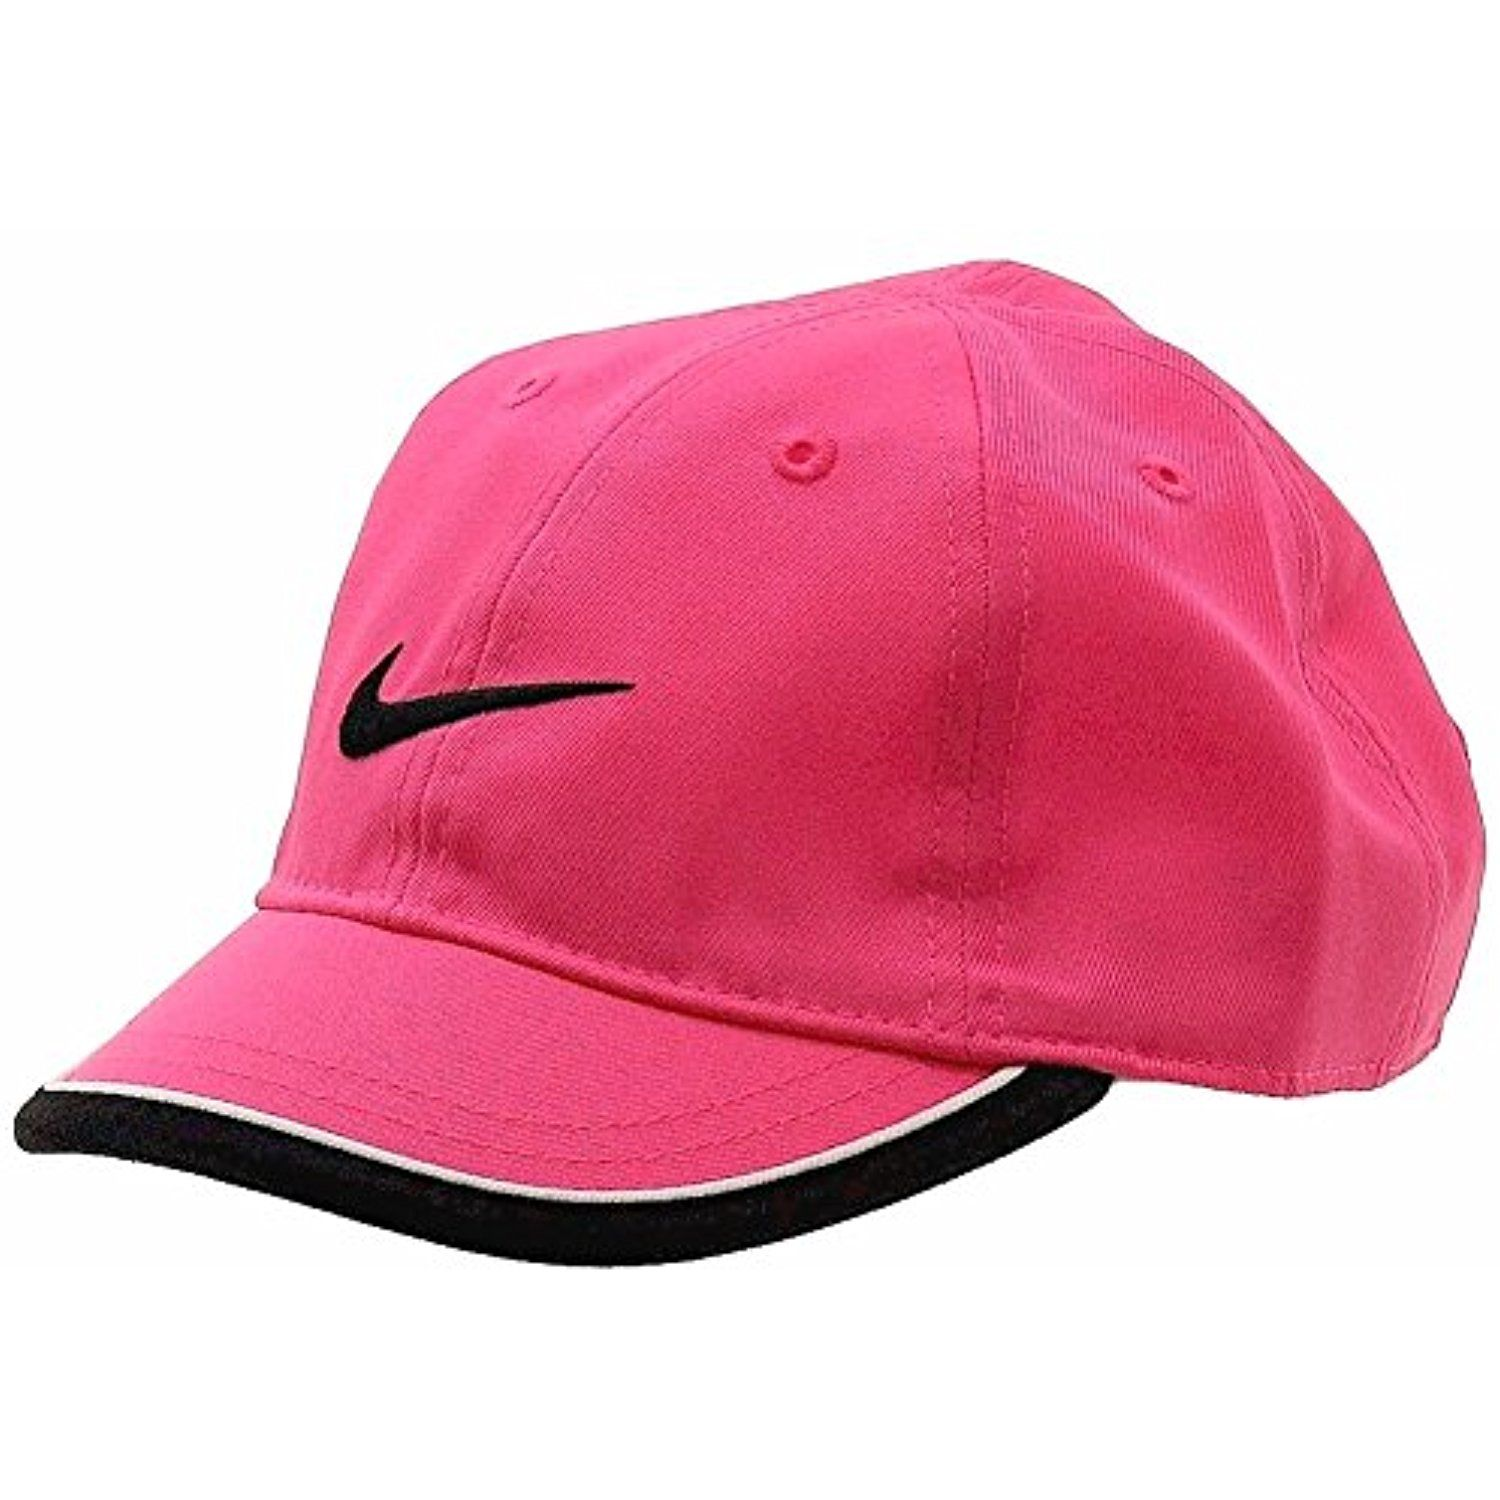 ac864fe92 Nike Dri-Fit Swoosh Graphic Baseball Adjustable Cap * You can find ...